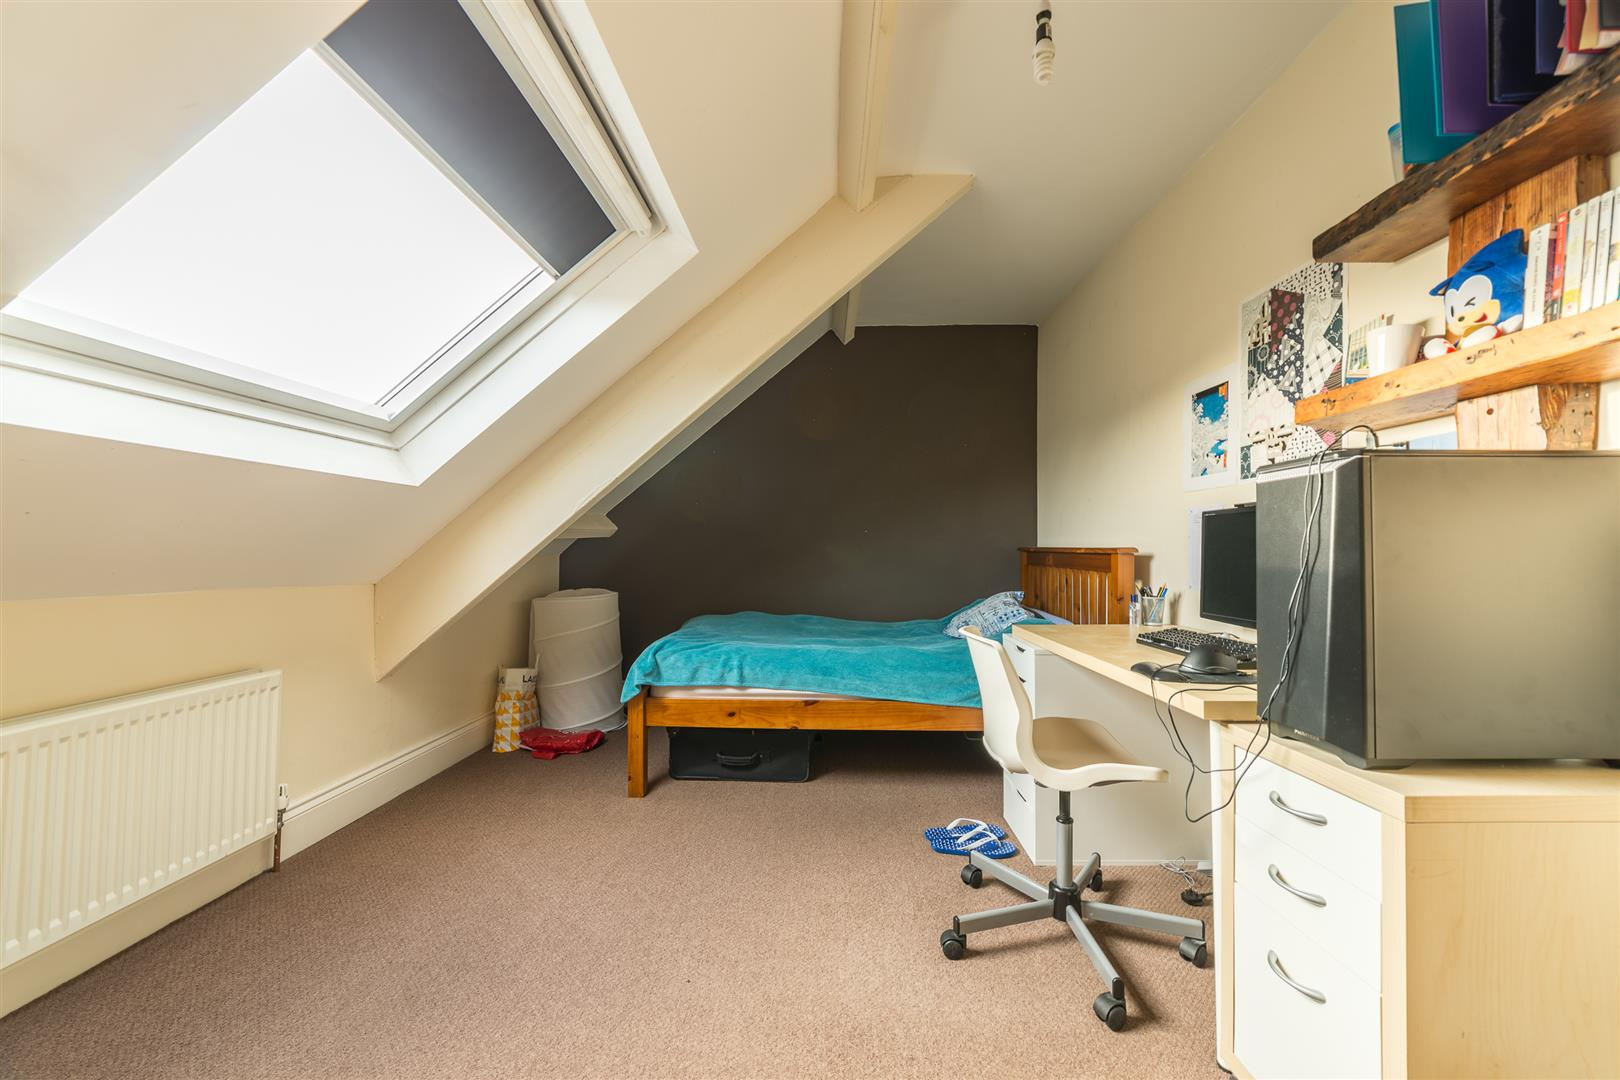 5 bed terraced house to rent in Newcastle Upon Tyne, NE4 5NL  - Property Image 15